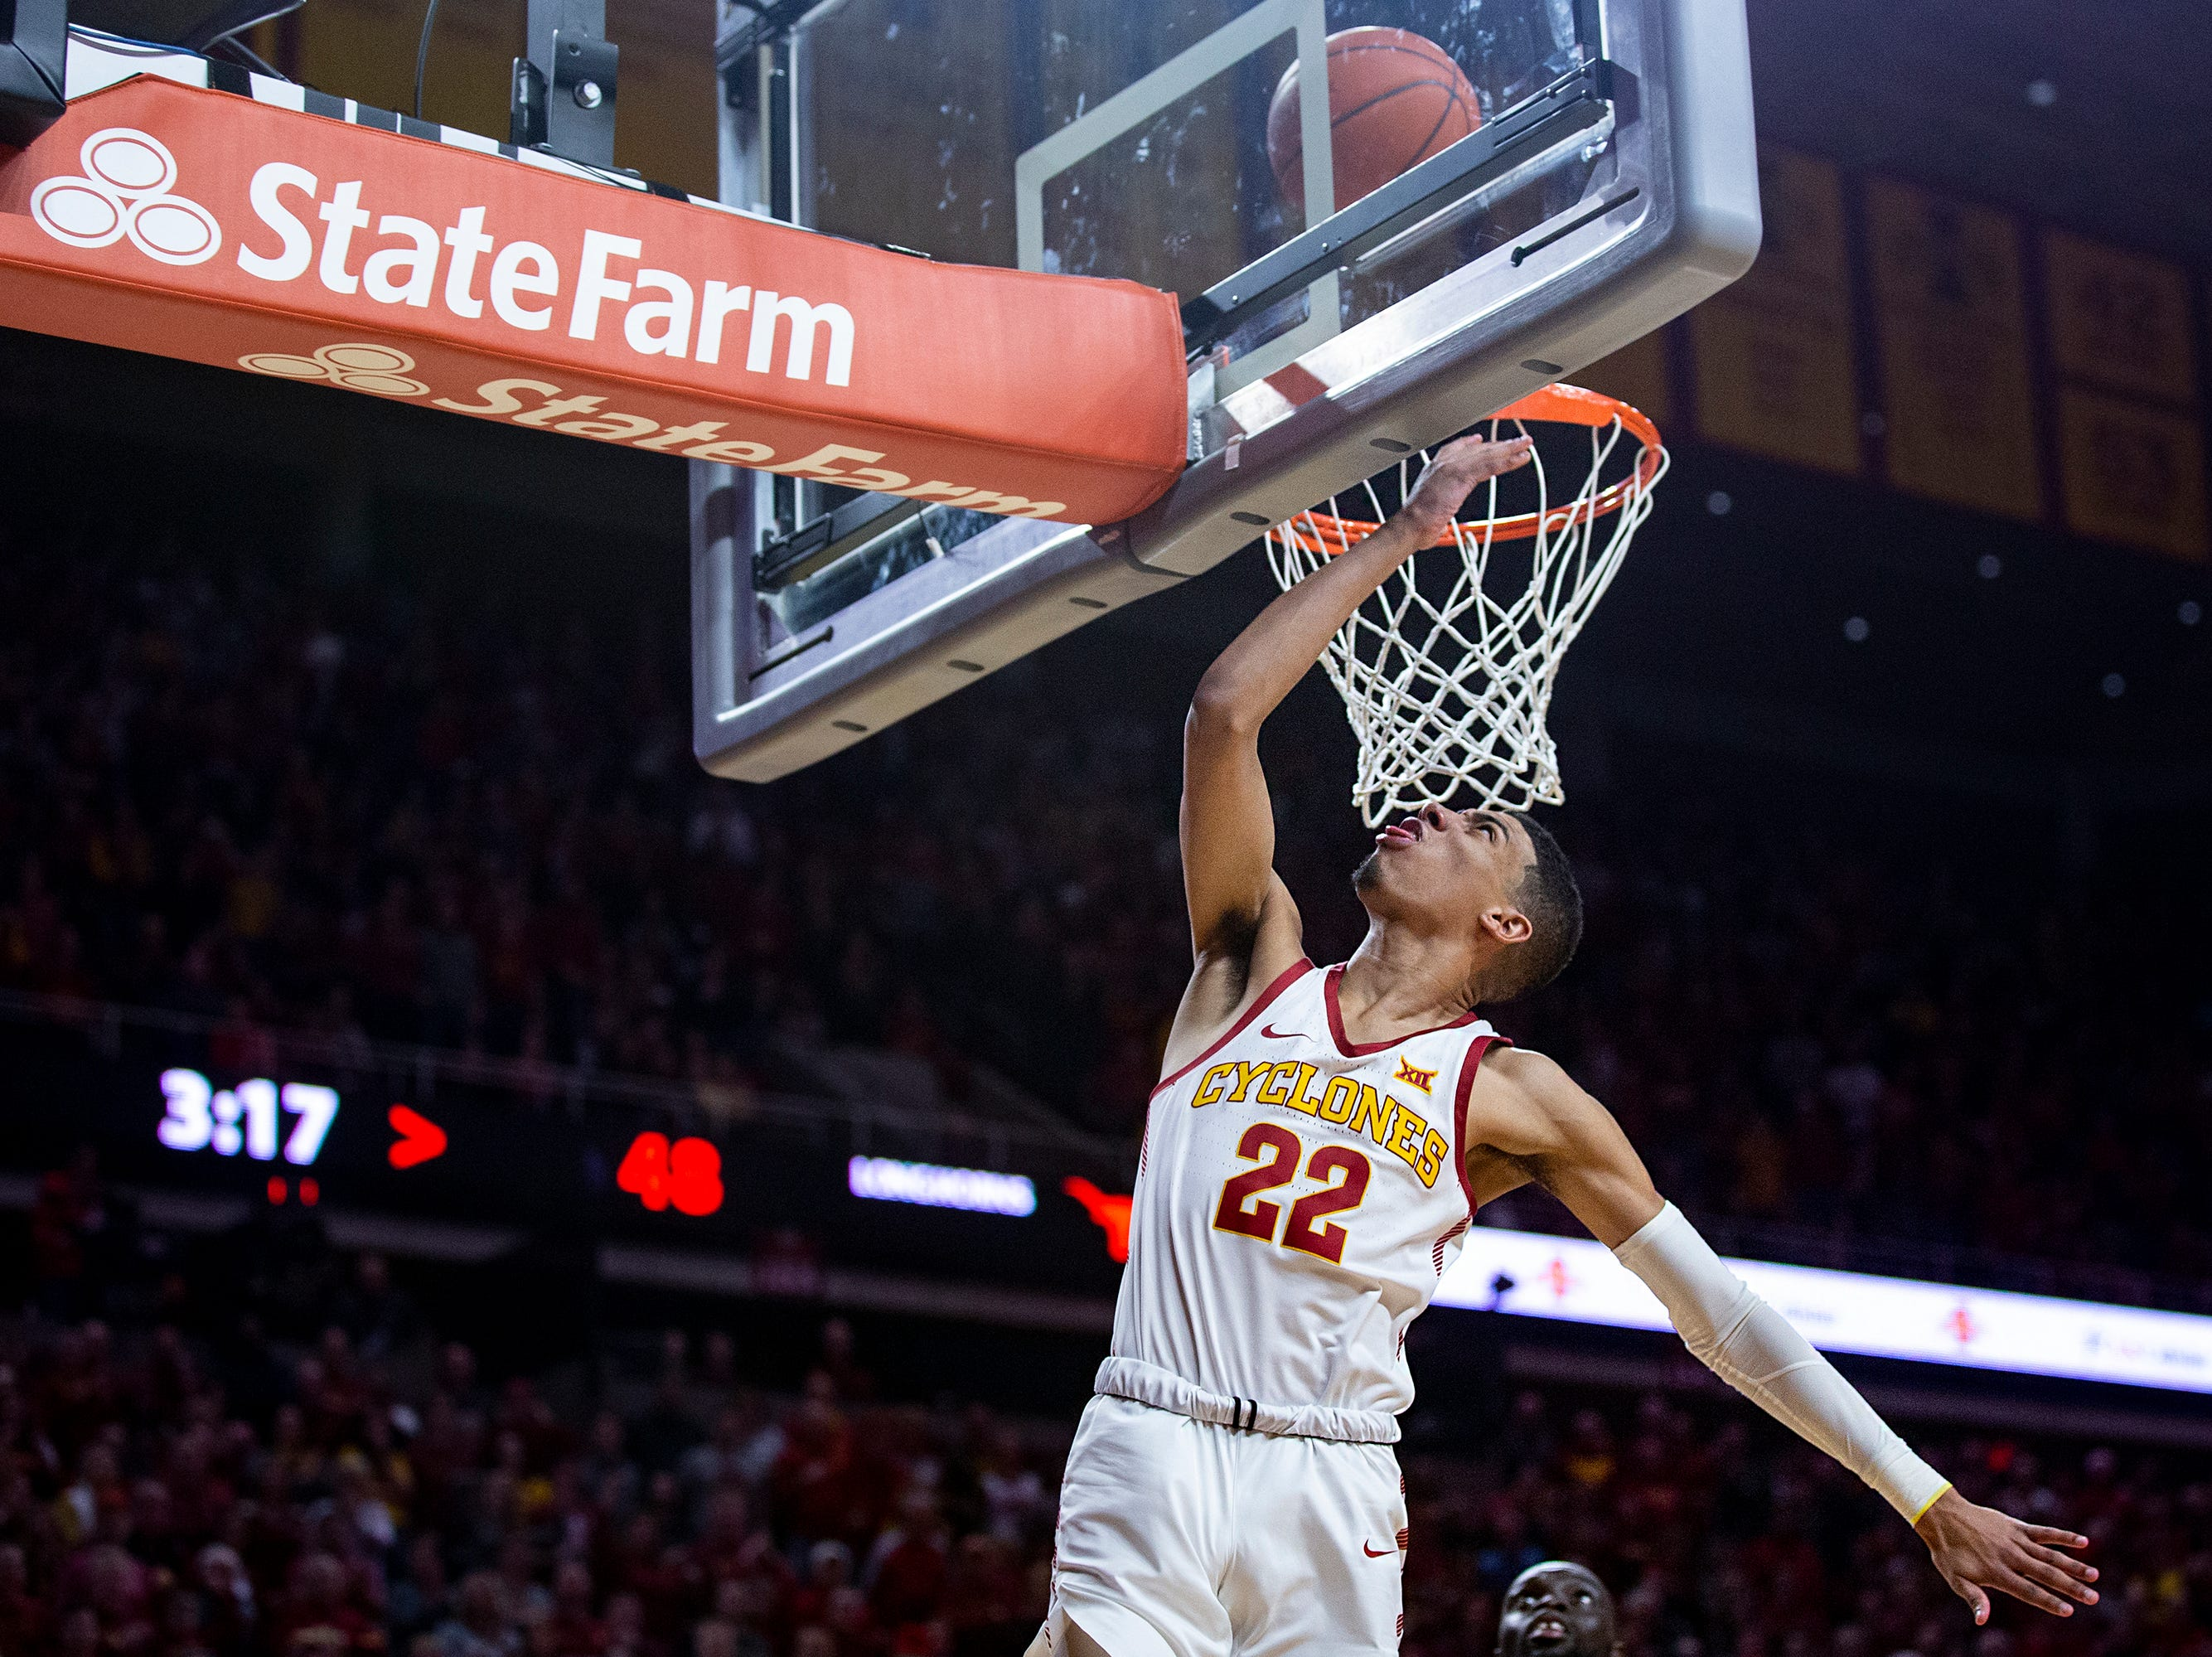 Iowa State's Tyrese Haliburton lays in the ball during the Iowa State men's basketball game against Texas on Saturday, Feb. 2, 2019, in Hilton Coliseum. The Cyclones defeated the Longhorns 65-60.